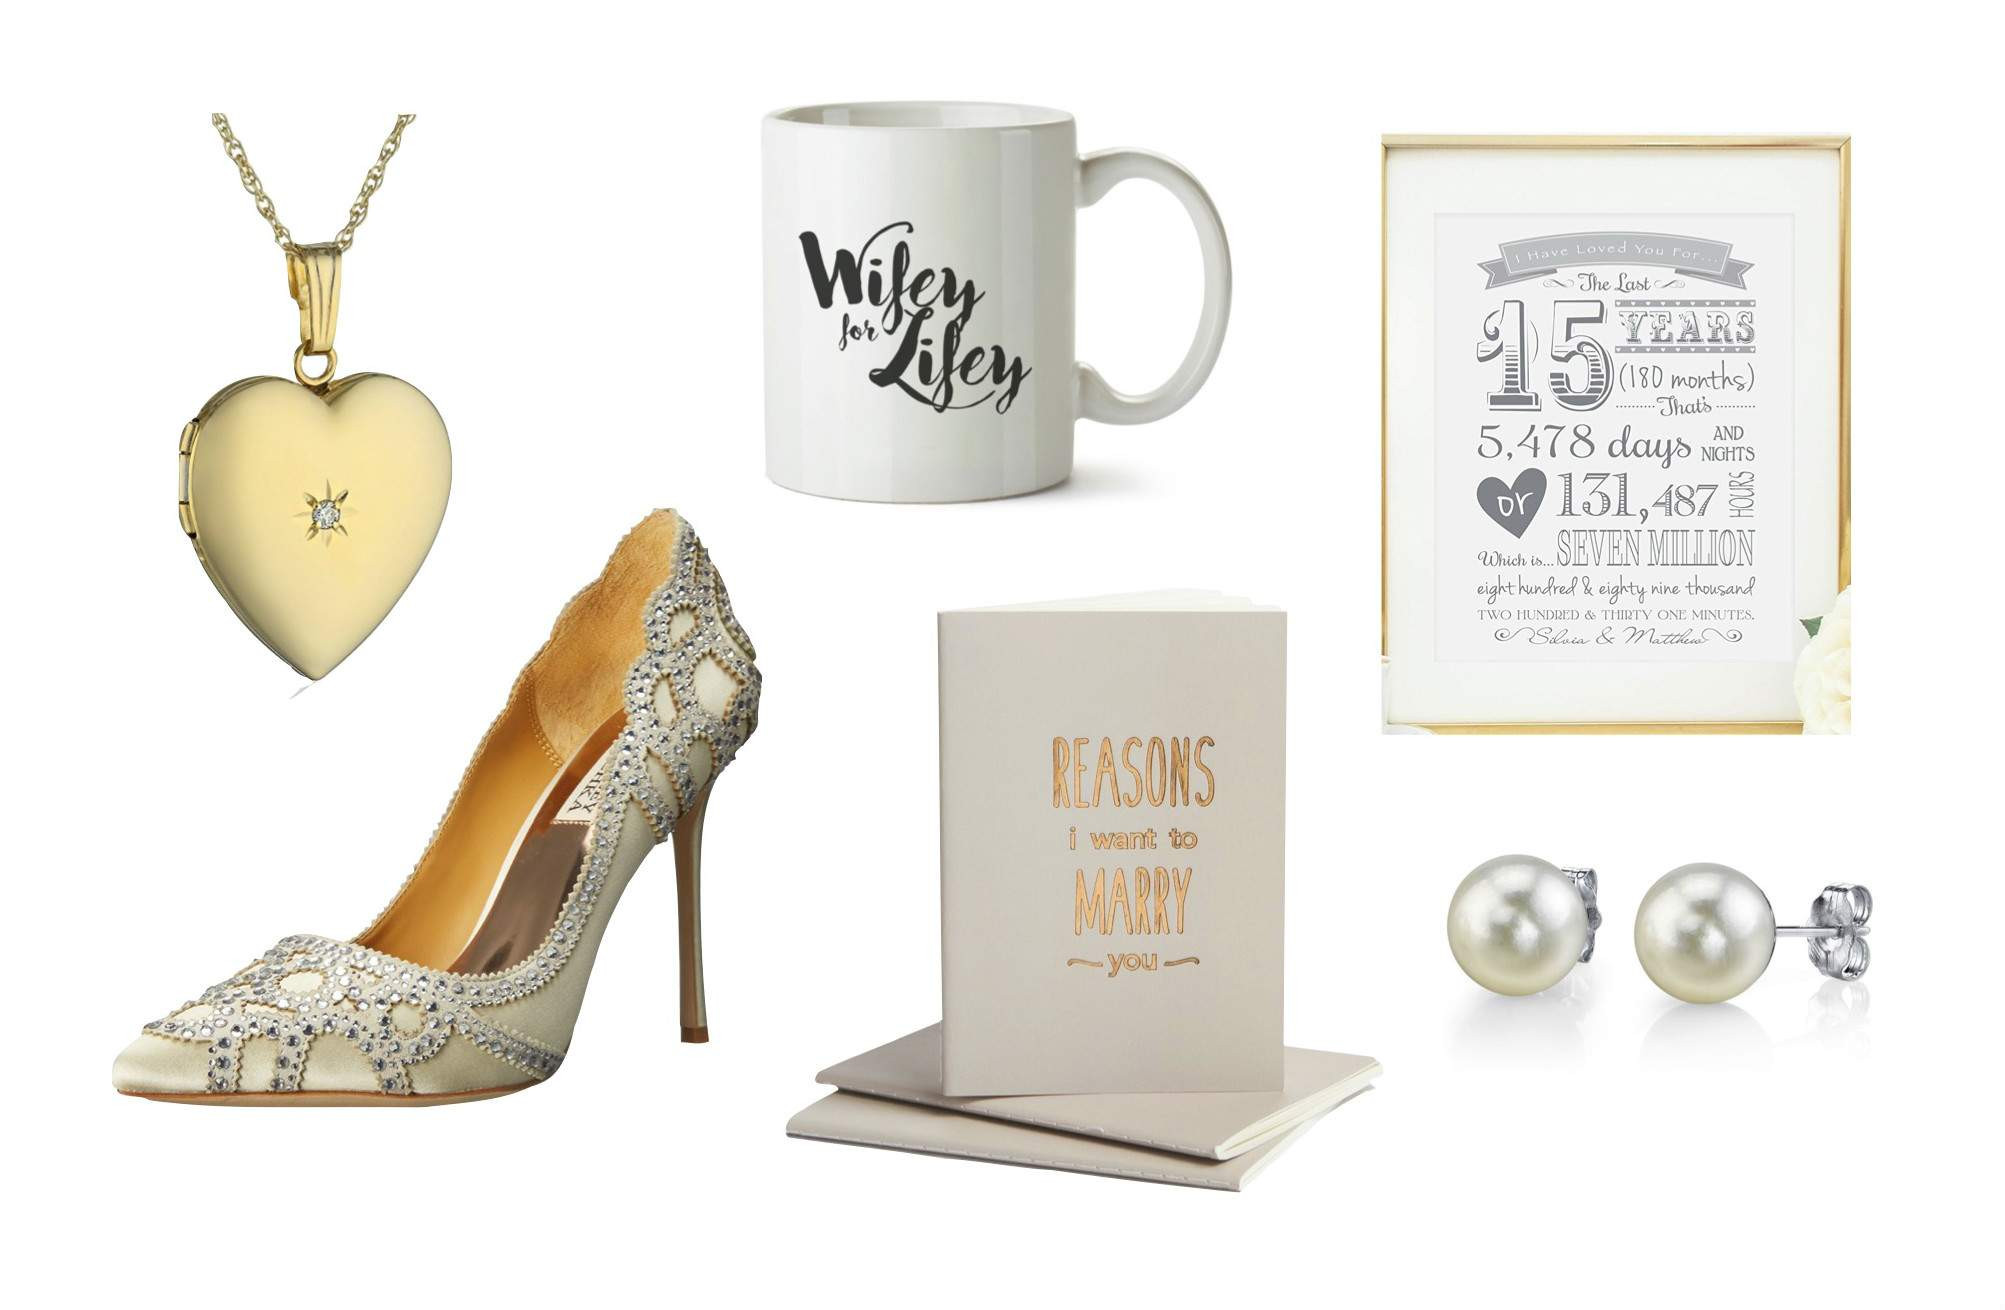 Best ideas about Groom To Bride Wedding Gift Ideas . Save or Pin Best Wedding Day Gift Ideas From the Groom to the Bride Now.